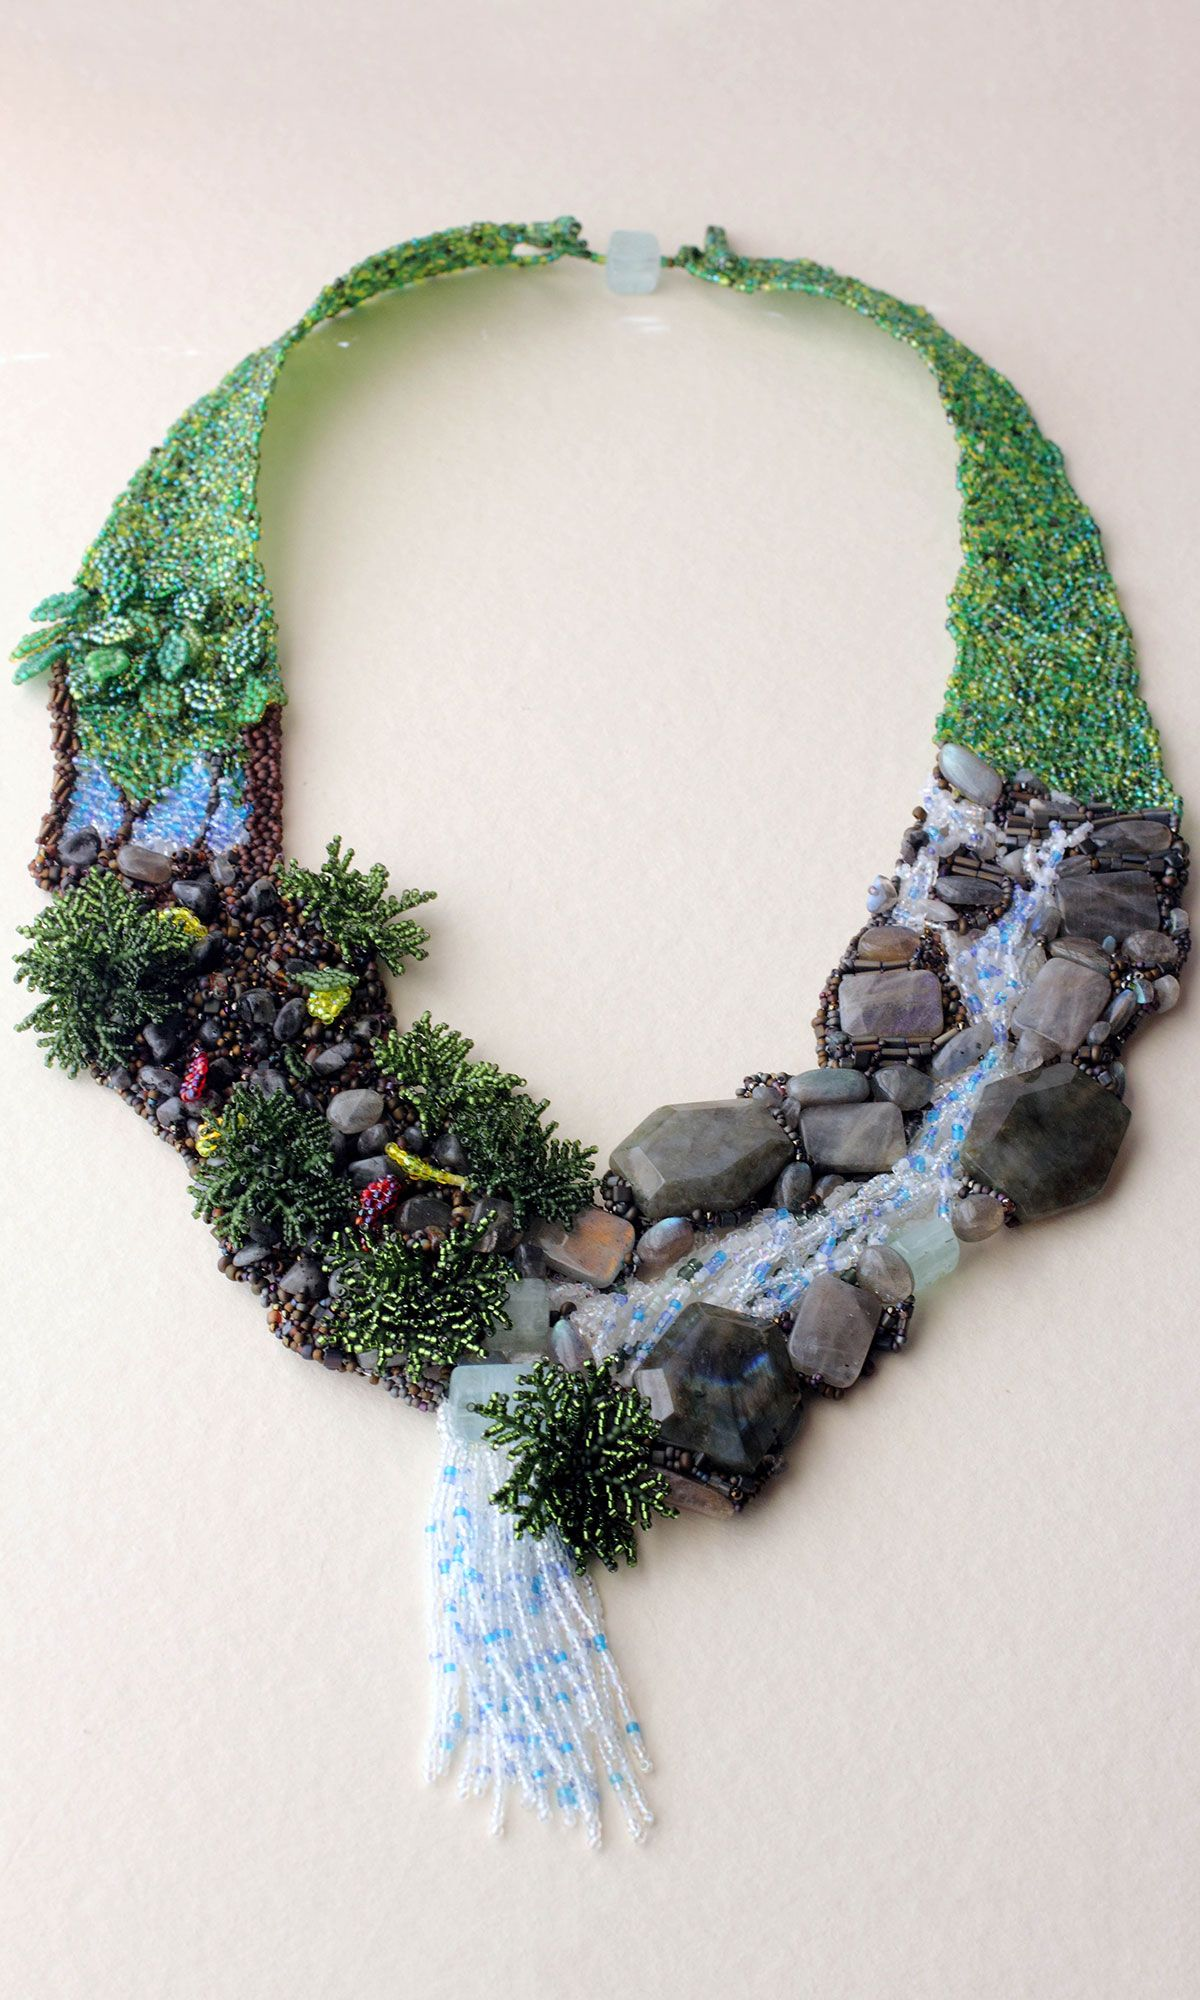 Jewelry Design - Bib-Style Necklace with Seed Beads and Gemstone Beads - Fire Mountain Gems and Beads